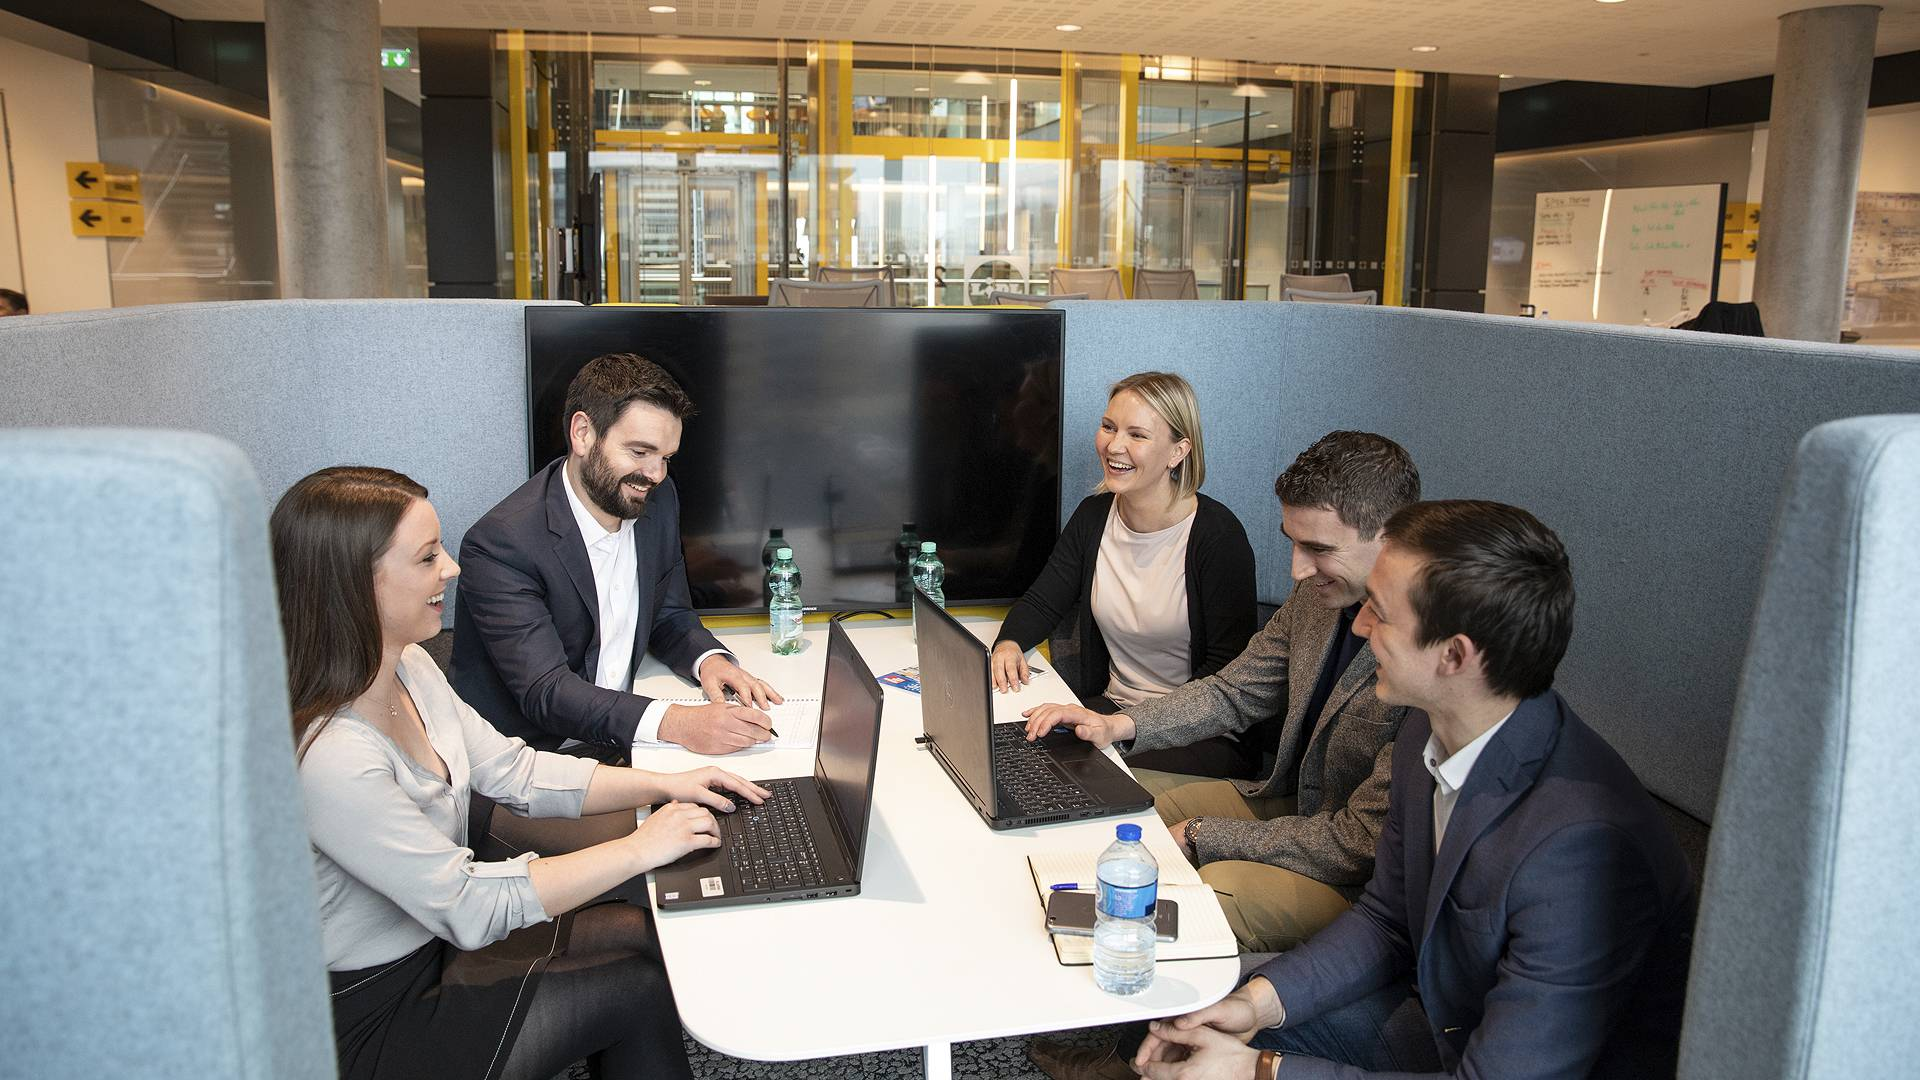 Office - Group of people in huddle space